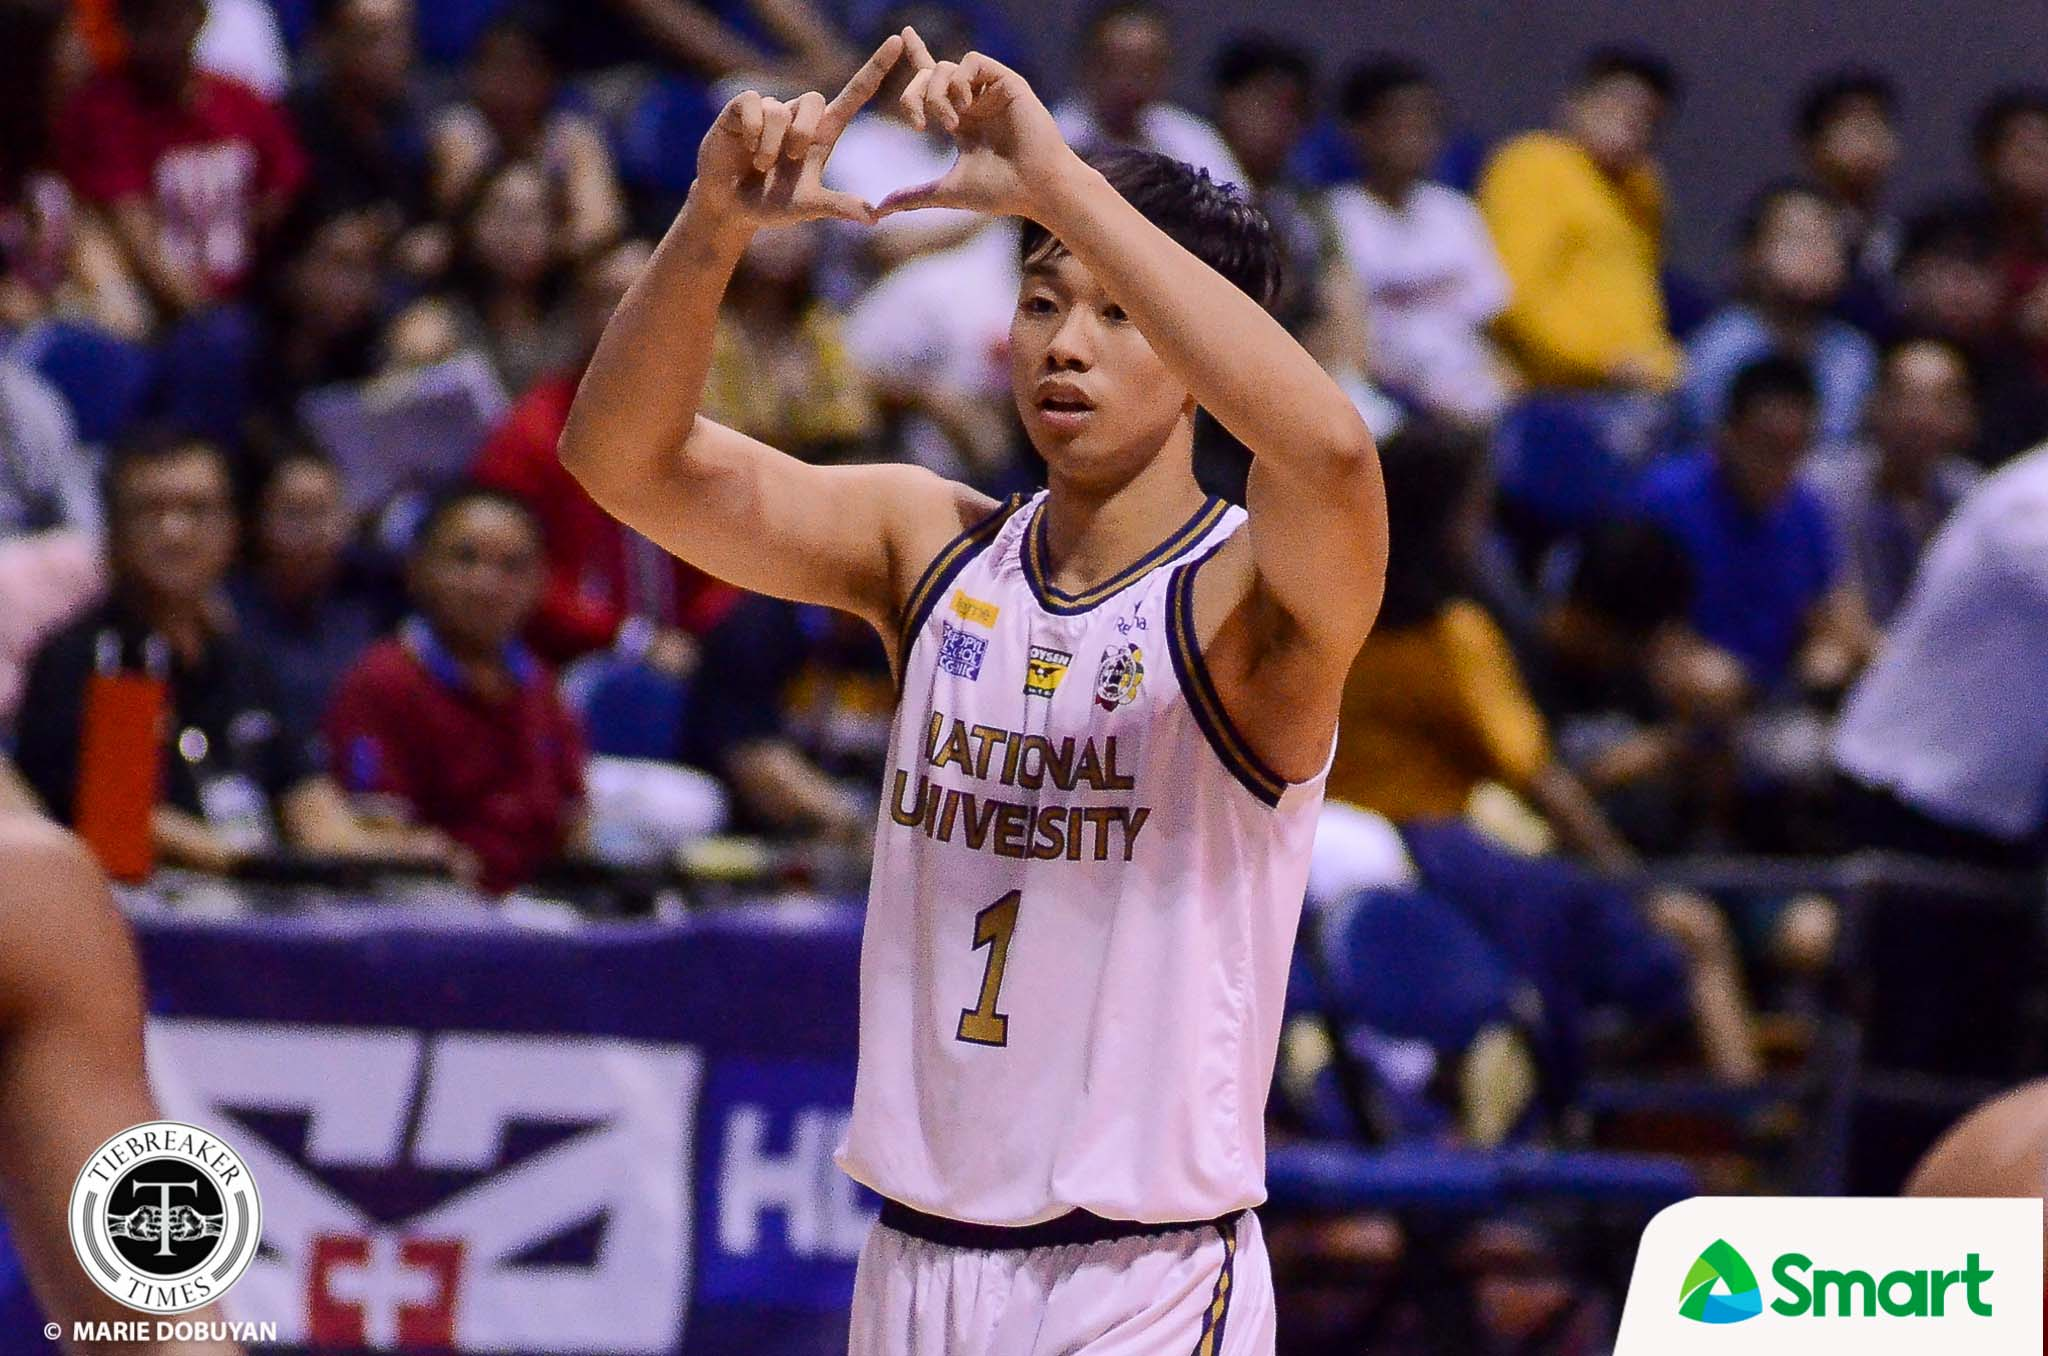 Tiebreaker Times Dave Ildefonso on Ateneo return: 'Not a lot of people will agree, but it's my life' ADMU Basketball News UAAP  UAAP Season 84 Men's bASKETBALL UAAP Season 84 Dave Ildefonso Ateneo Men's Basketball